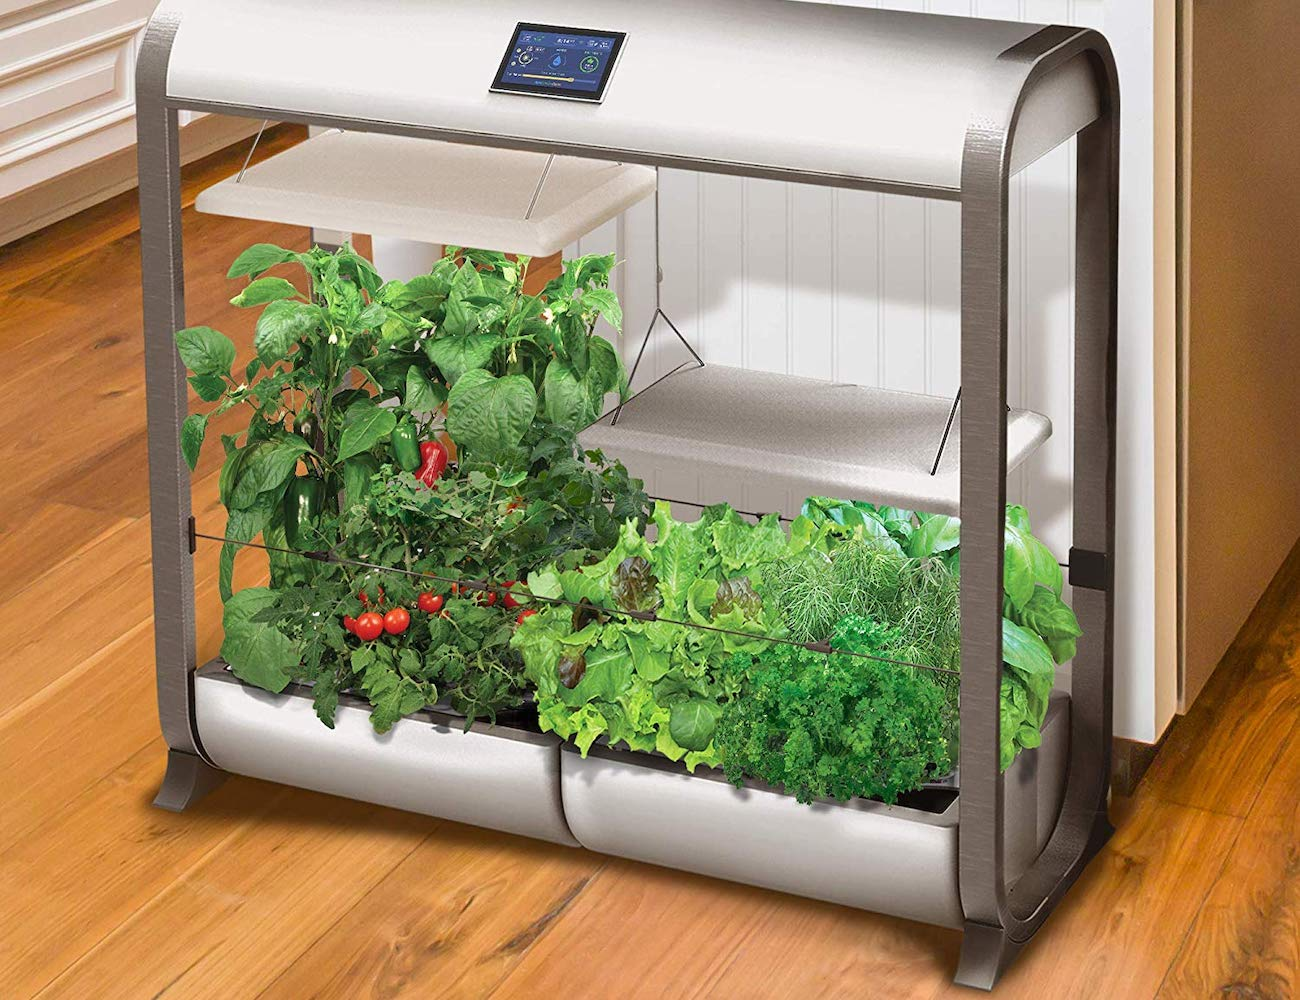 AeroGarden Farm Plus Smart Hydroponic Garden lets you grow all year long